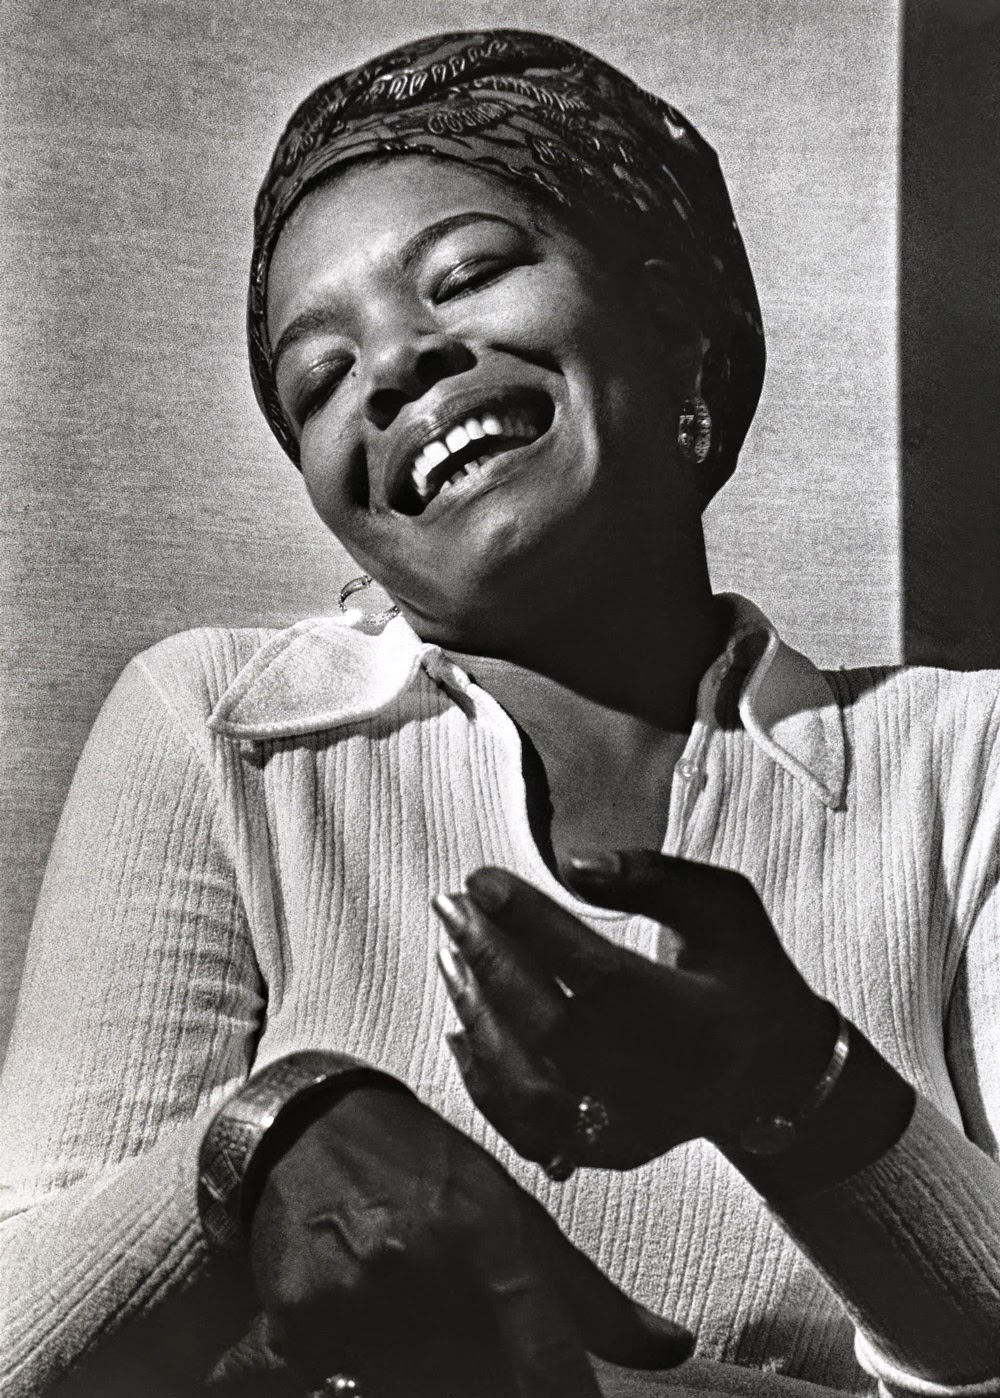 a biography of maya angelou born in california Biography maya angelou was born as marguerite johnson on april 4th, 1928, in st louis, missouri and raised in st louis and stamps, arkansas maya angelou became .